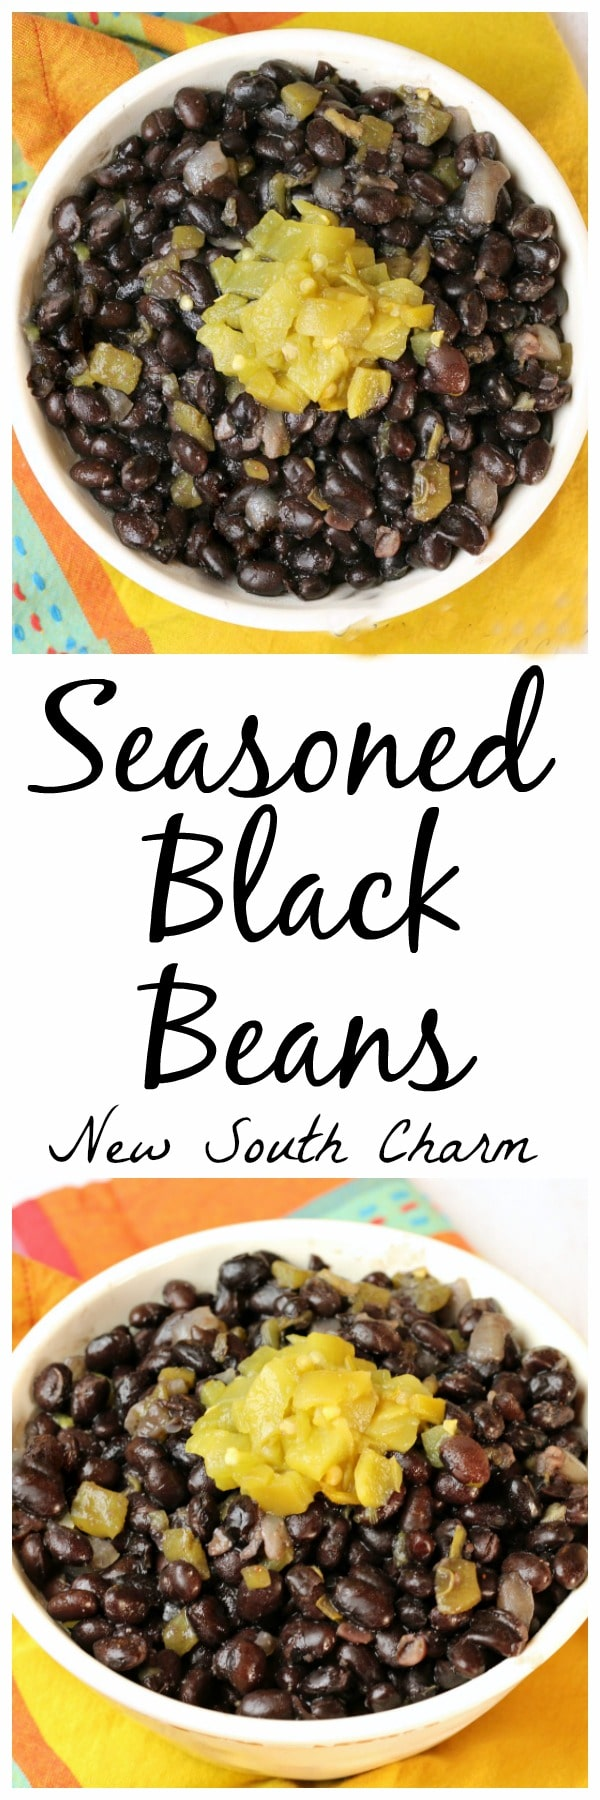 Seasoned Black Beans are the perfect side dish for all your favorite Mexican and Tex-Mex recipes.